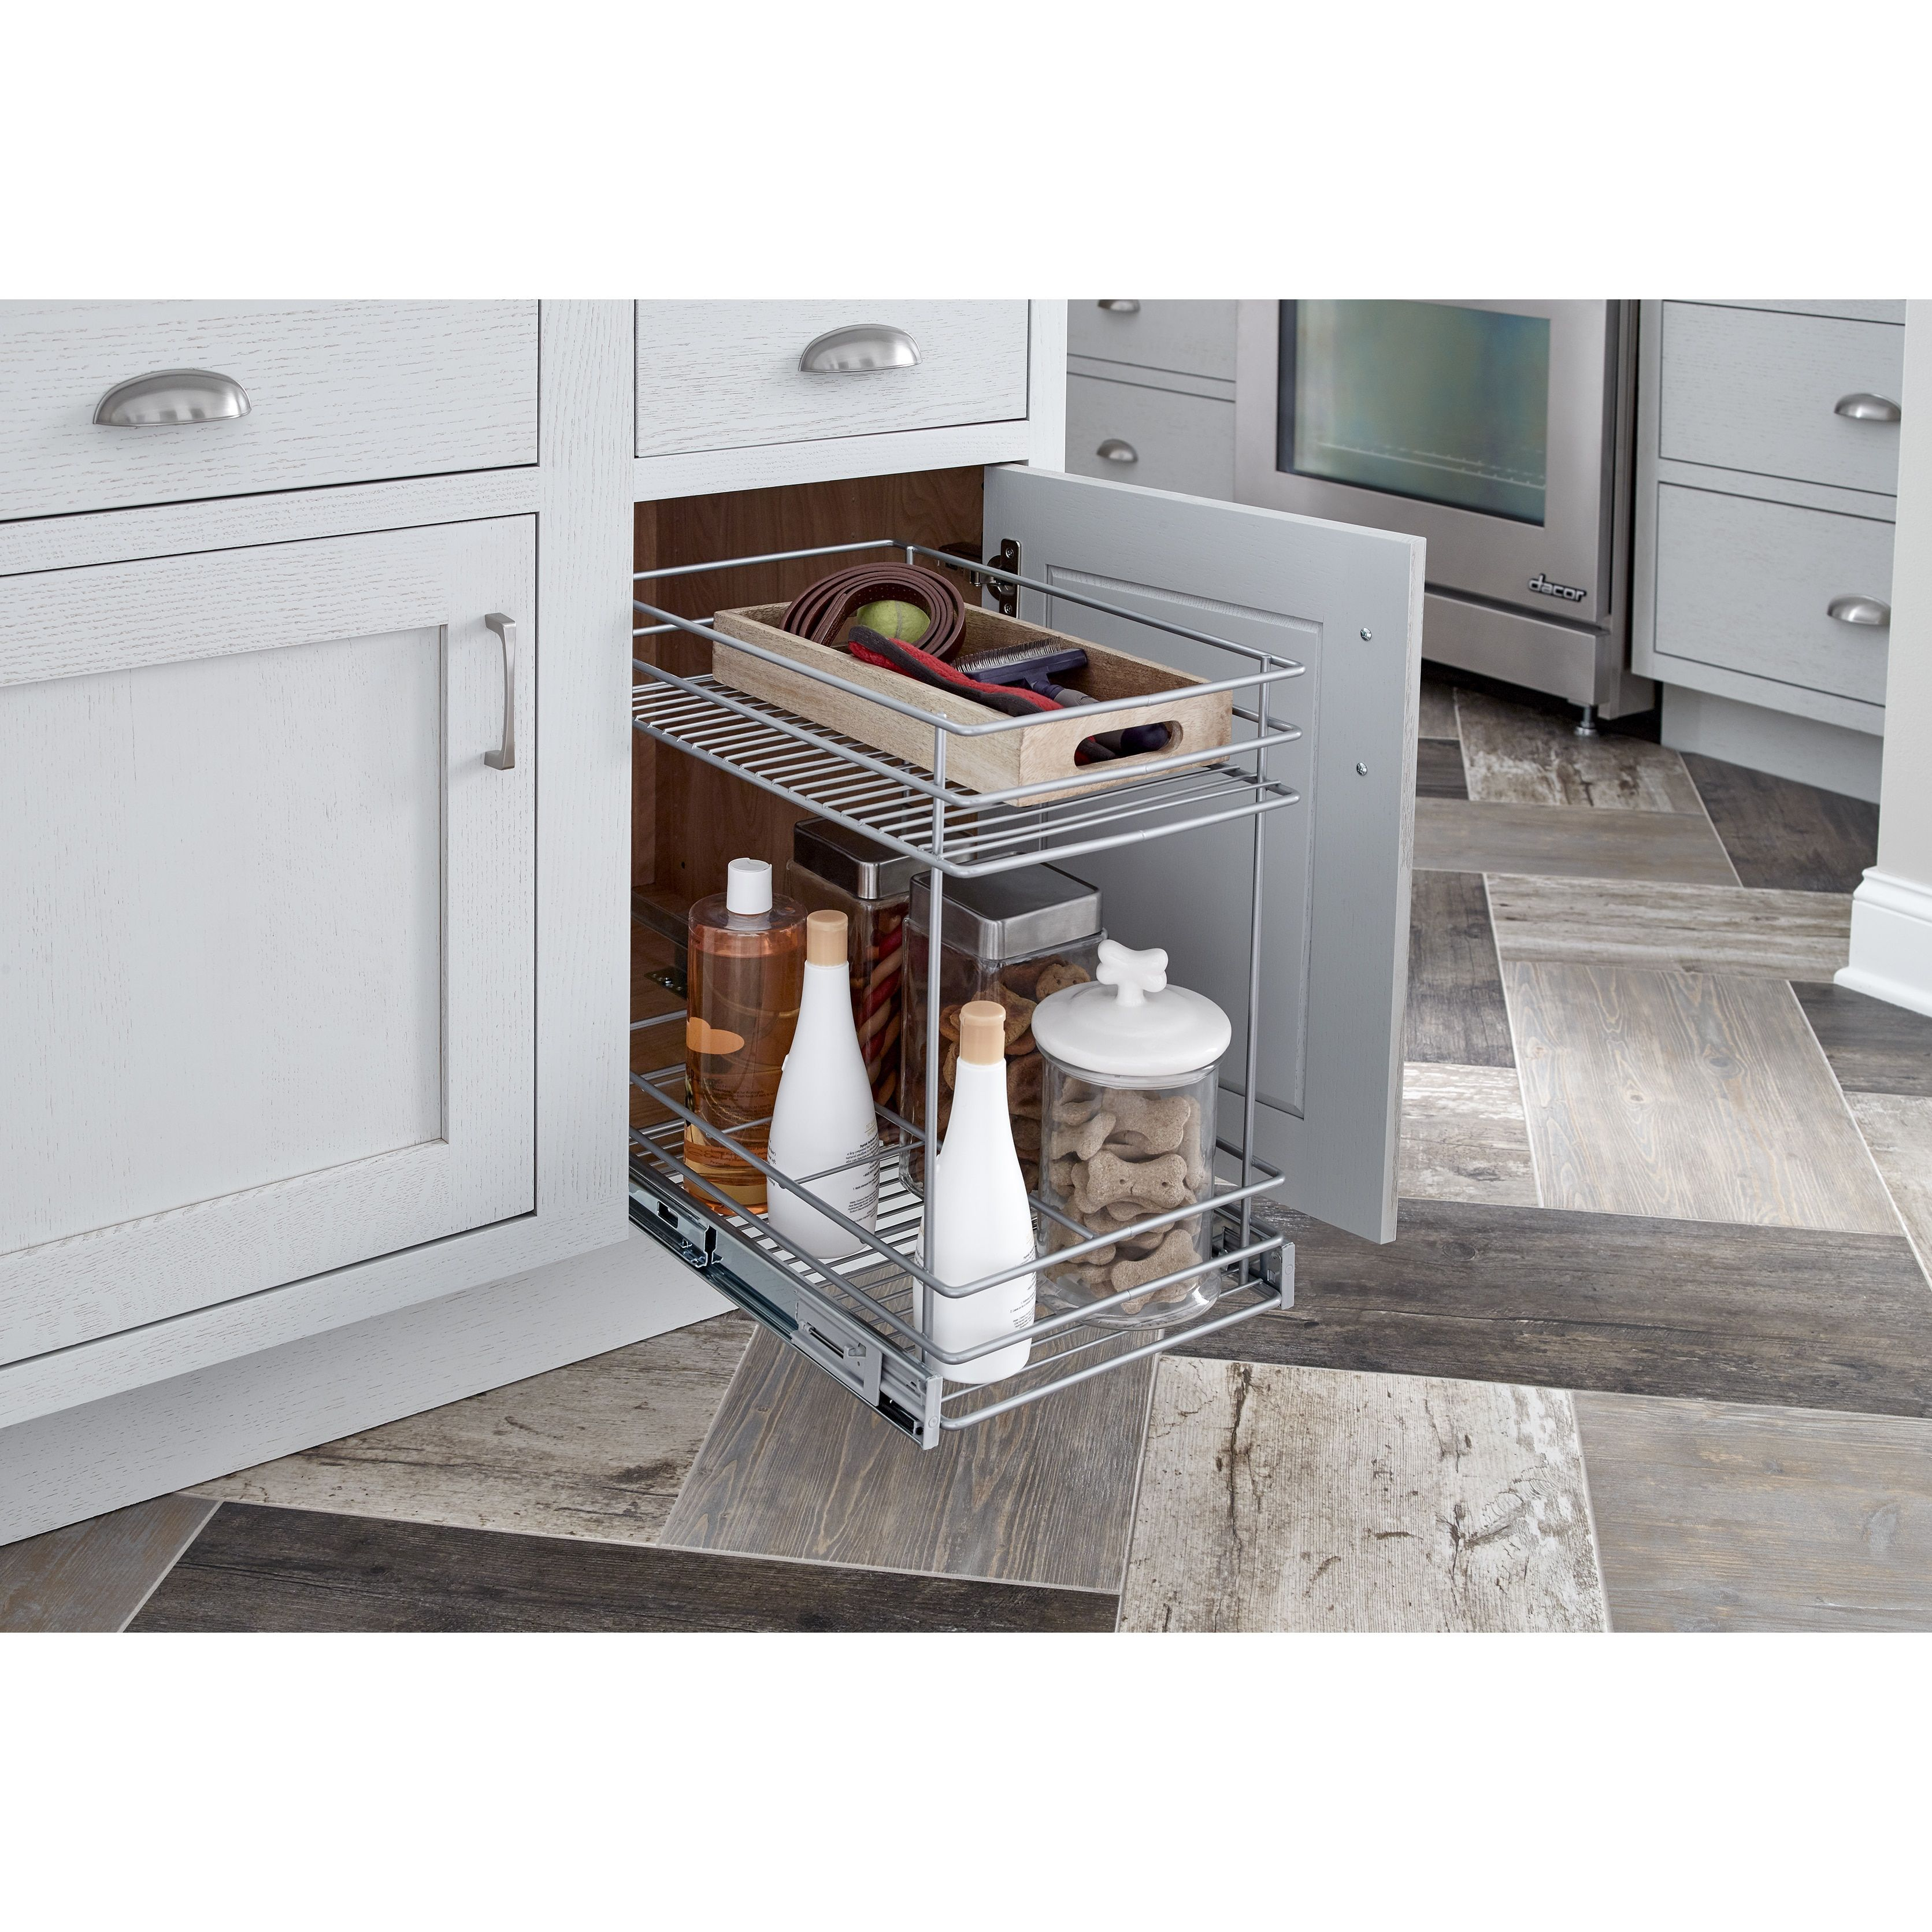 Closetmaid Premium 115Inch 2Tier Cabinet Pull Out Basket Classy Pull Out Kitchen Cabinet Design Ideas